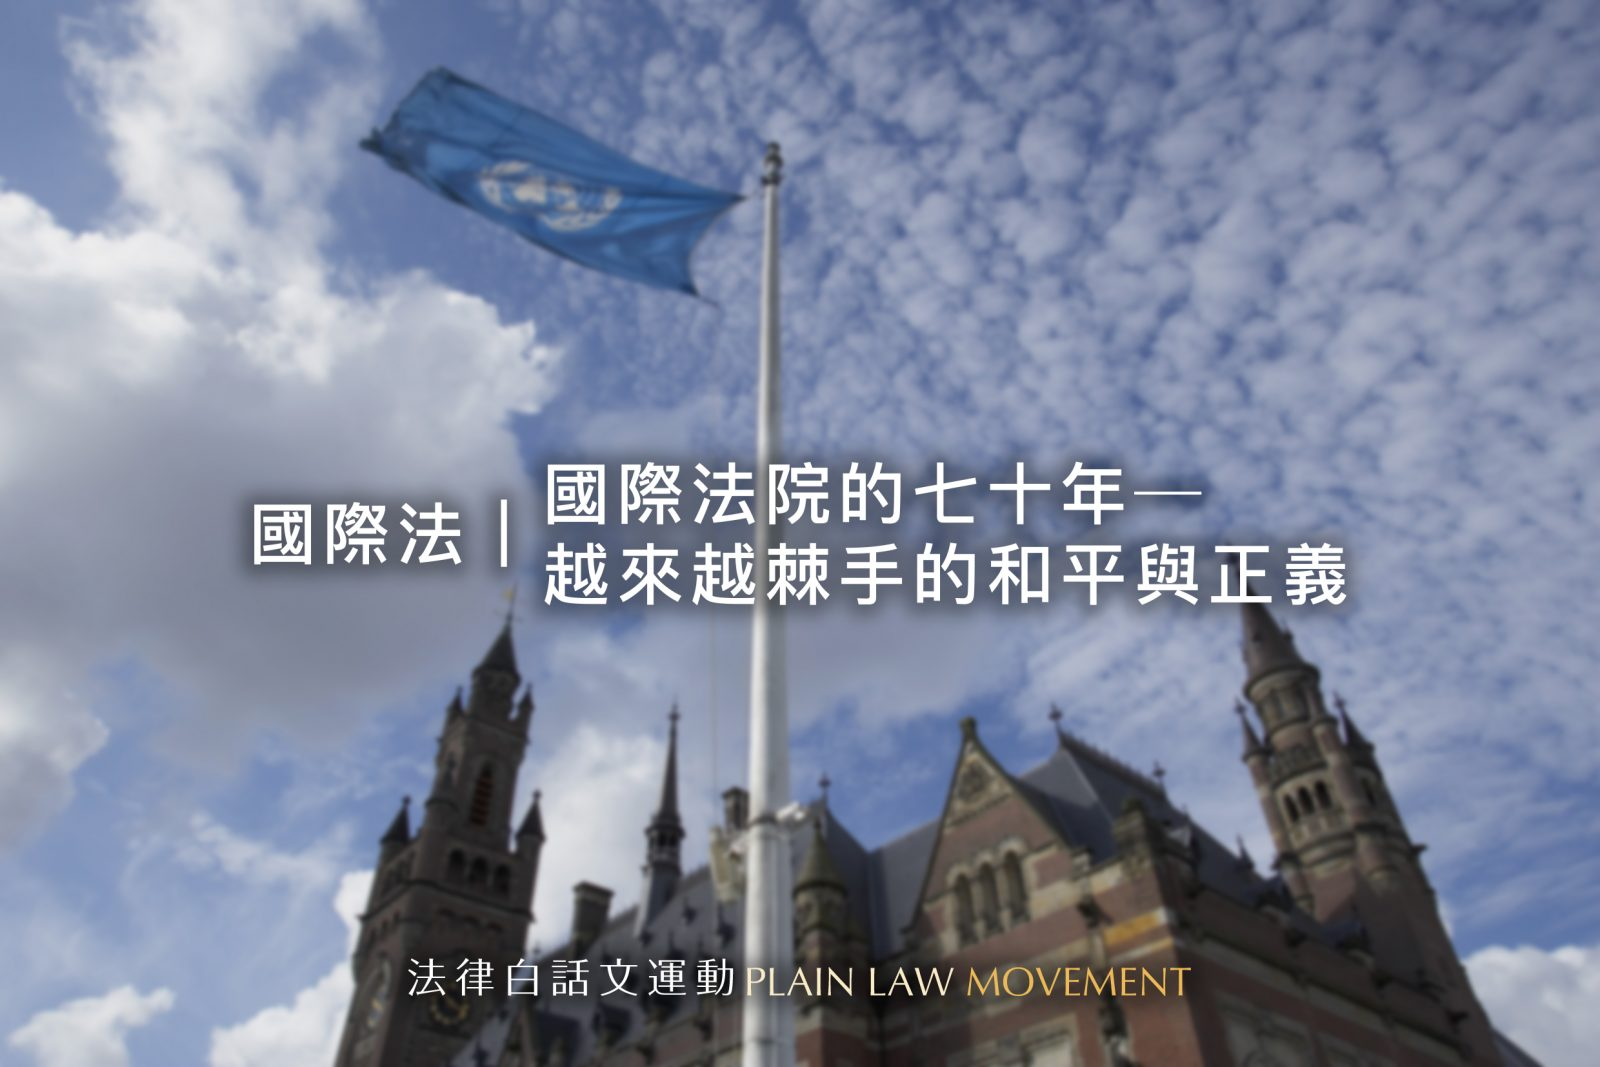 ICJ General Presentation Gallery (ICJ Film, Official Pictures)